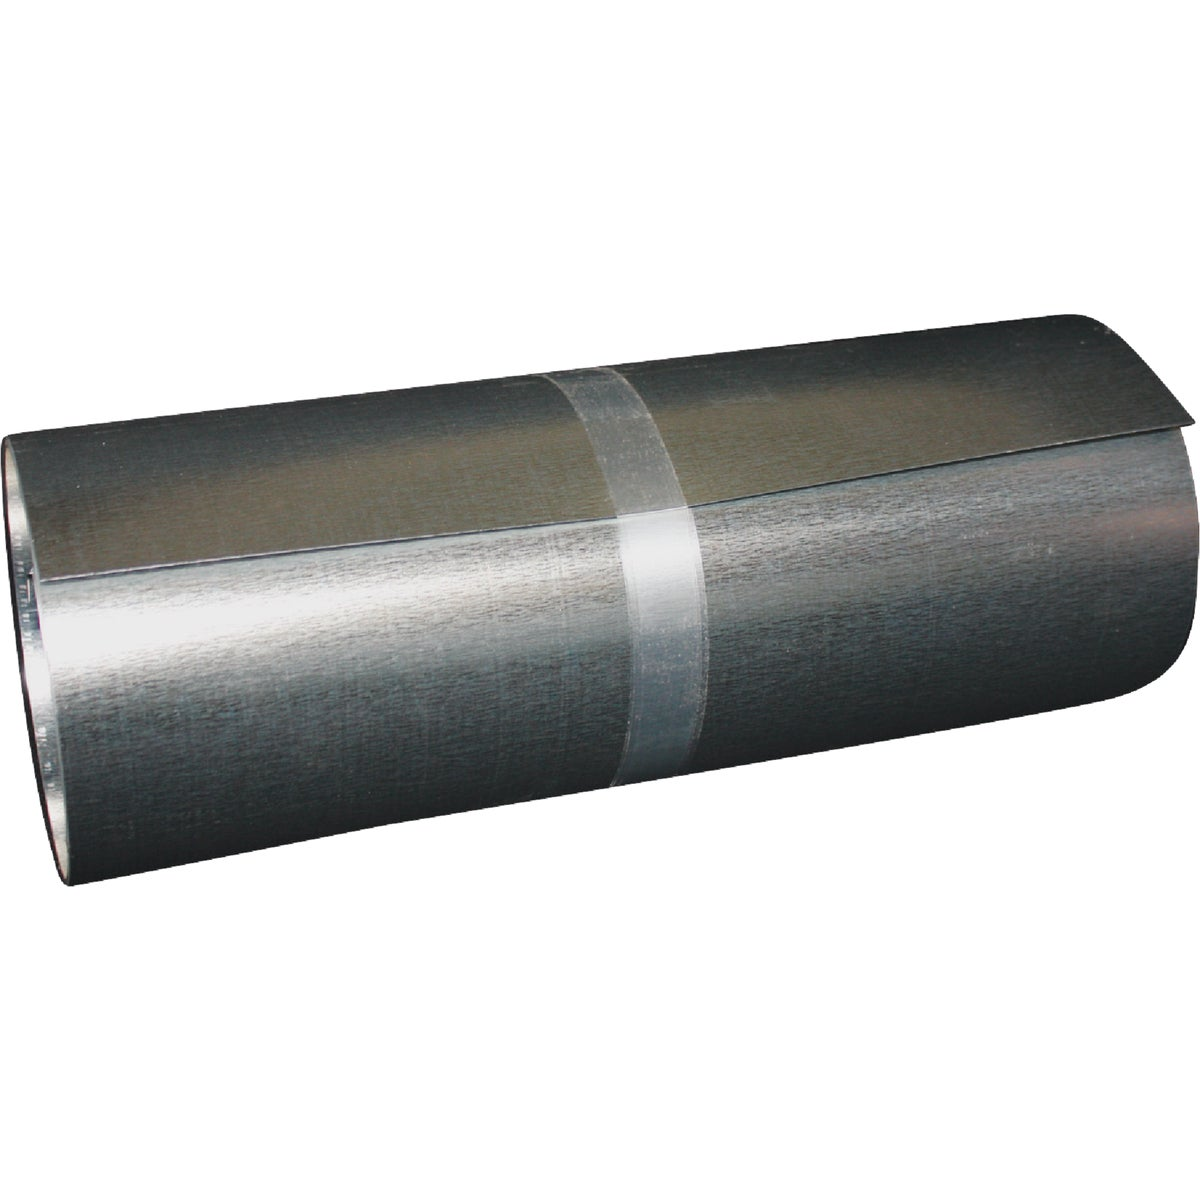 "10""X10' GALV ROLL VALLEY"